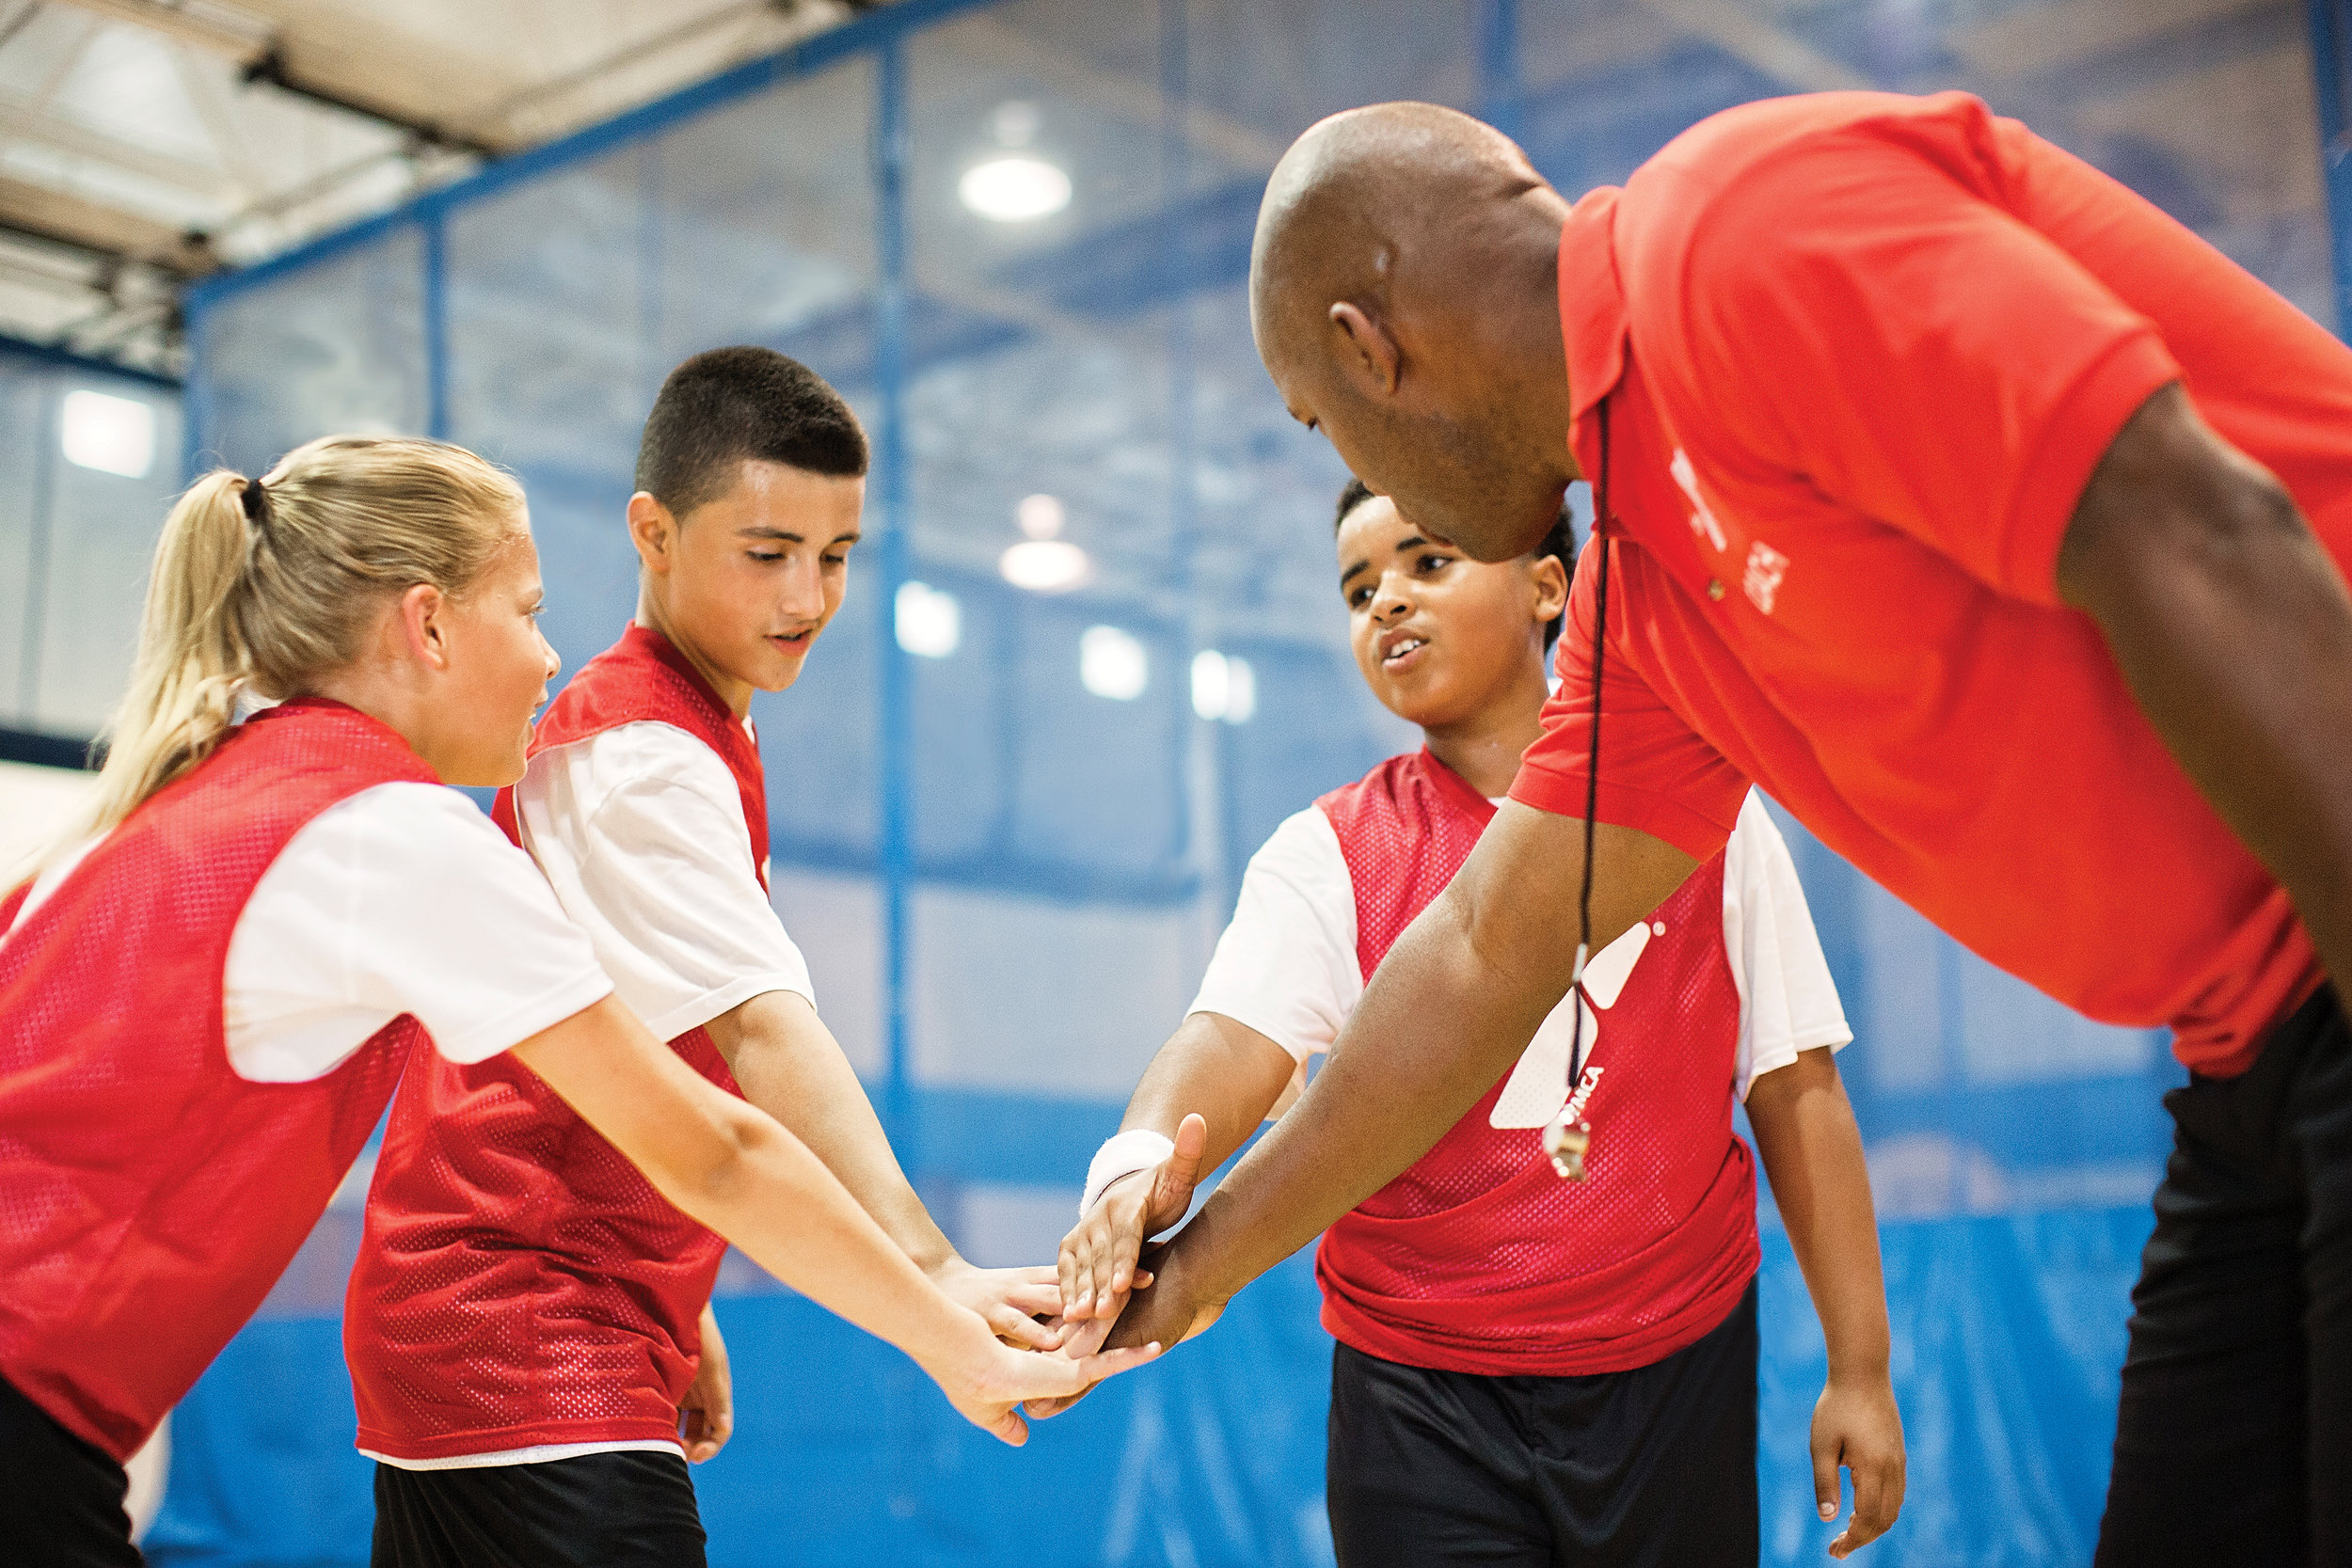 Sports Camp 2019 - Parkersburg YMCA Summer Sports CampsWe're giving kids a chance to explore different sports during the summer while teaching them sportsmanship, teamwork, and skills they need on and off the field or court. Whether it's basketball, baseball, or cross-country, there's a camp for every child! Registration is now open so use the link below to find out more!